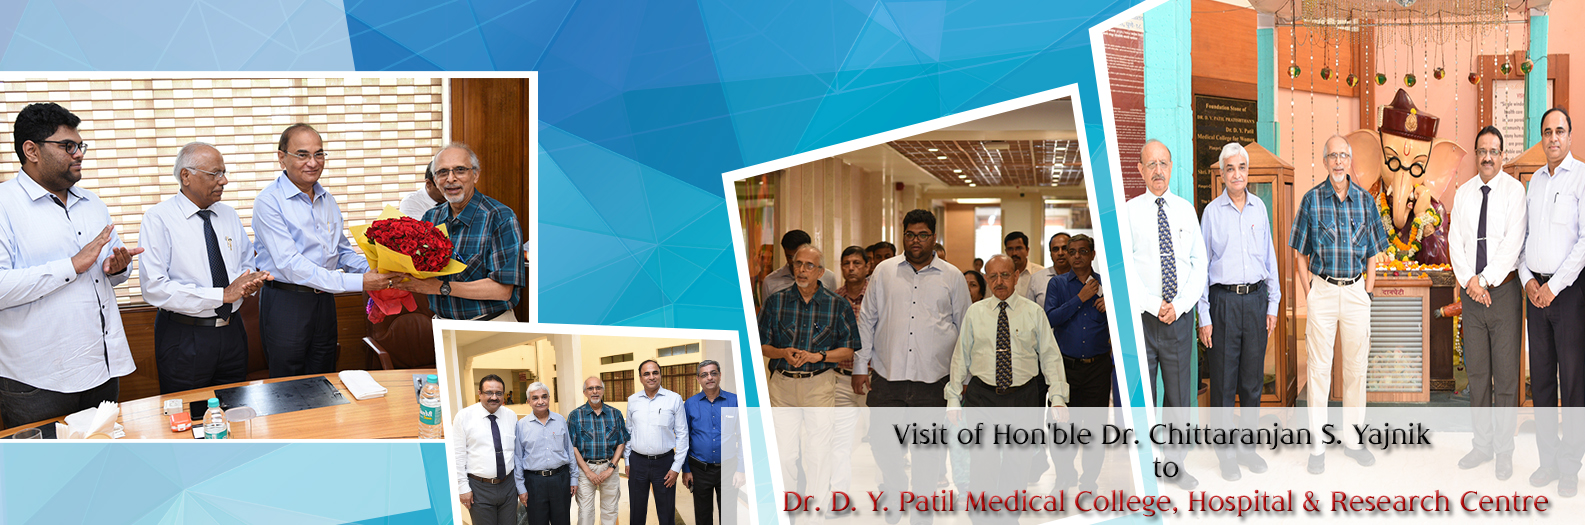 Hon'ble Dr. Chittaranjan S. Yajnik visits Dr. D. Y. Patil Hospital & Research Centre